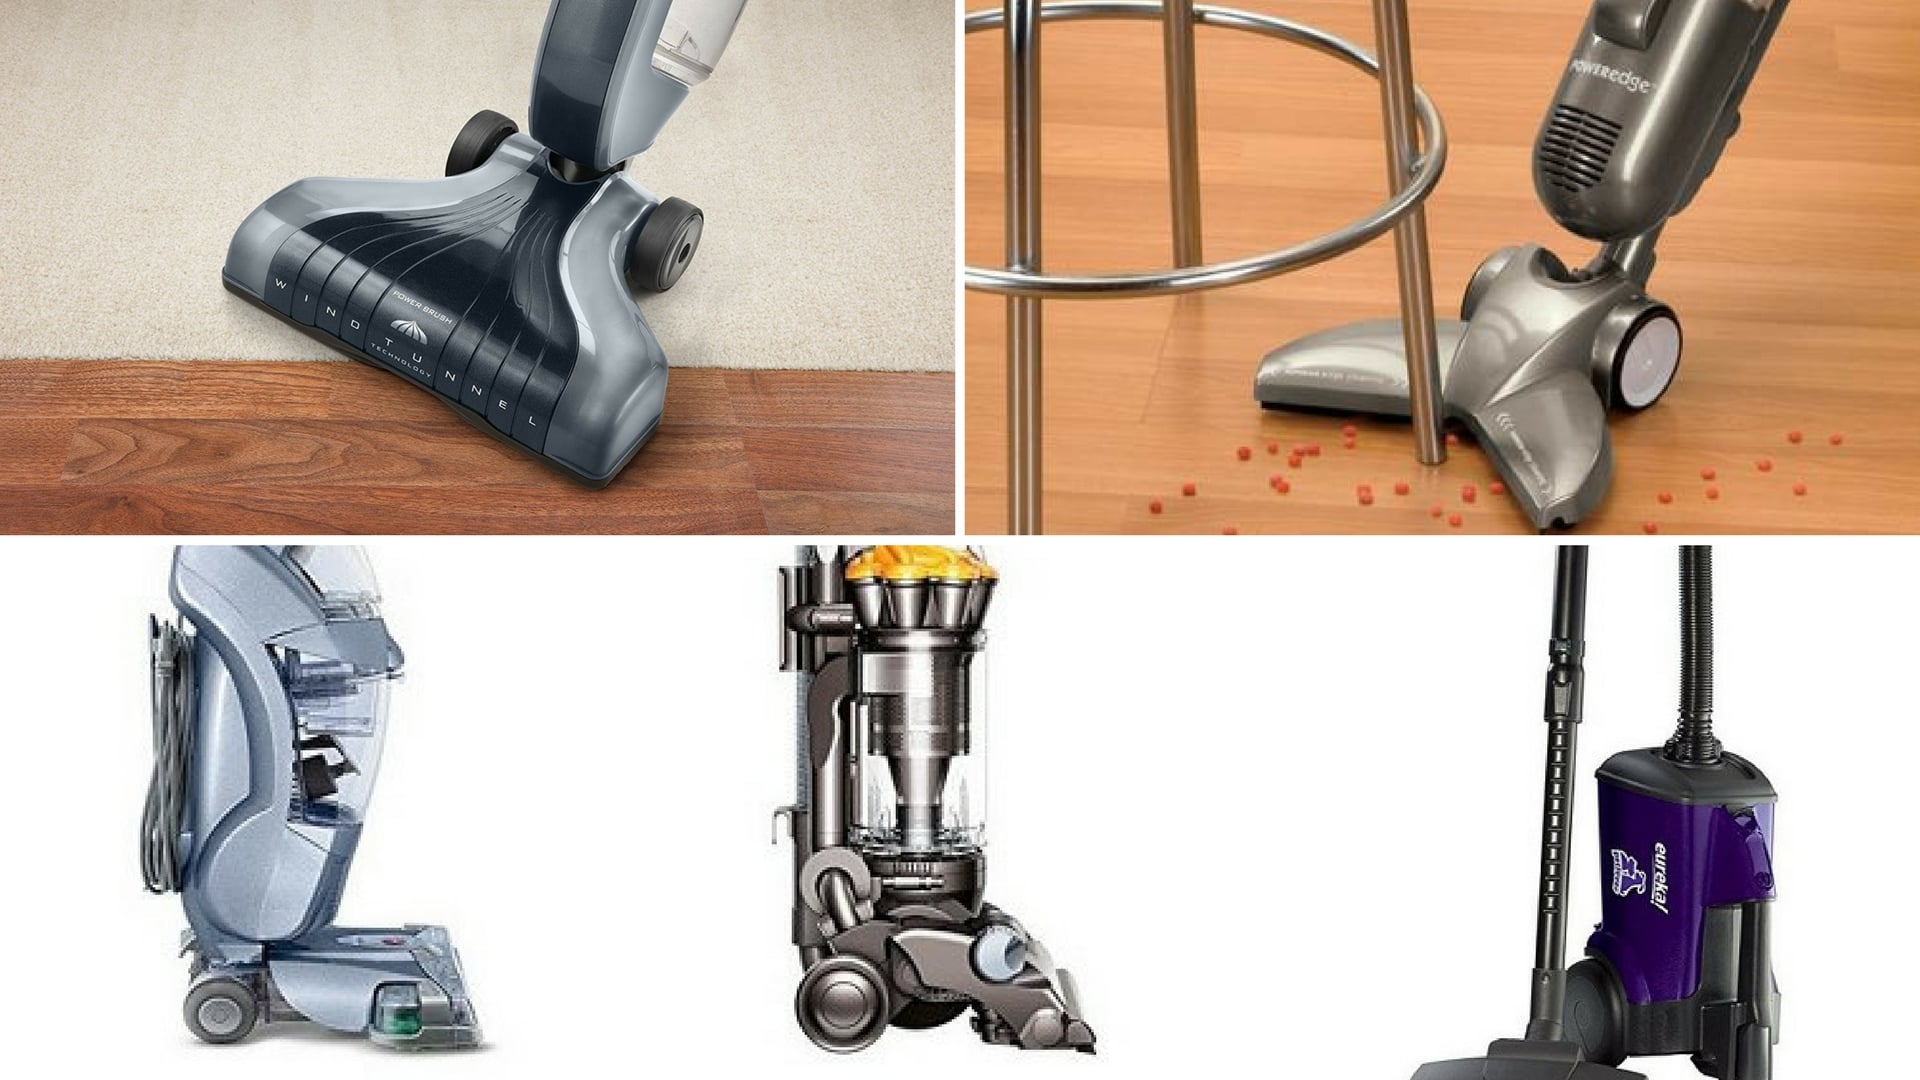 5 Best Vacuum For Tile Floors Review Ing Guide 2019